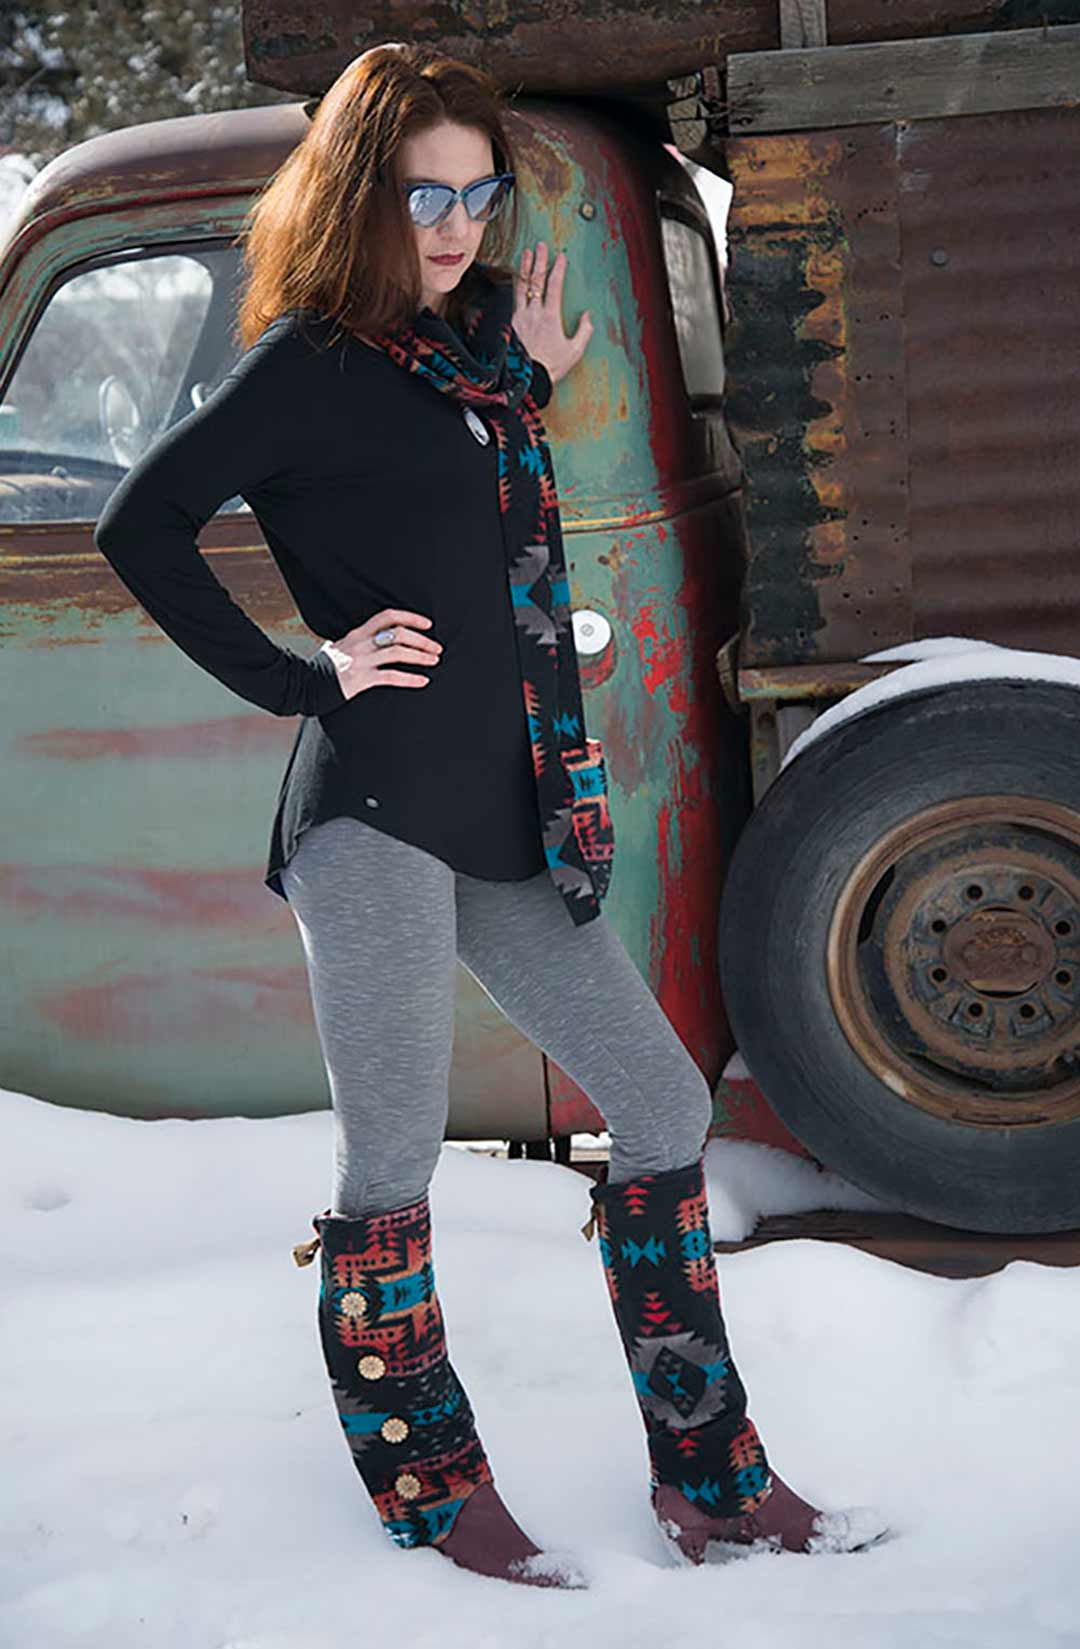 KangarooGirls™ Southwestern Style Scarf in Fleece by Gail Russell Art & Apparell, Taos, New Mexico